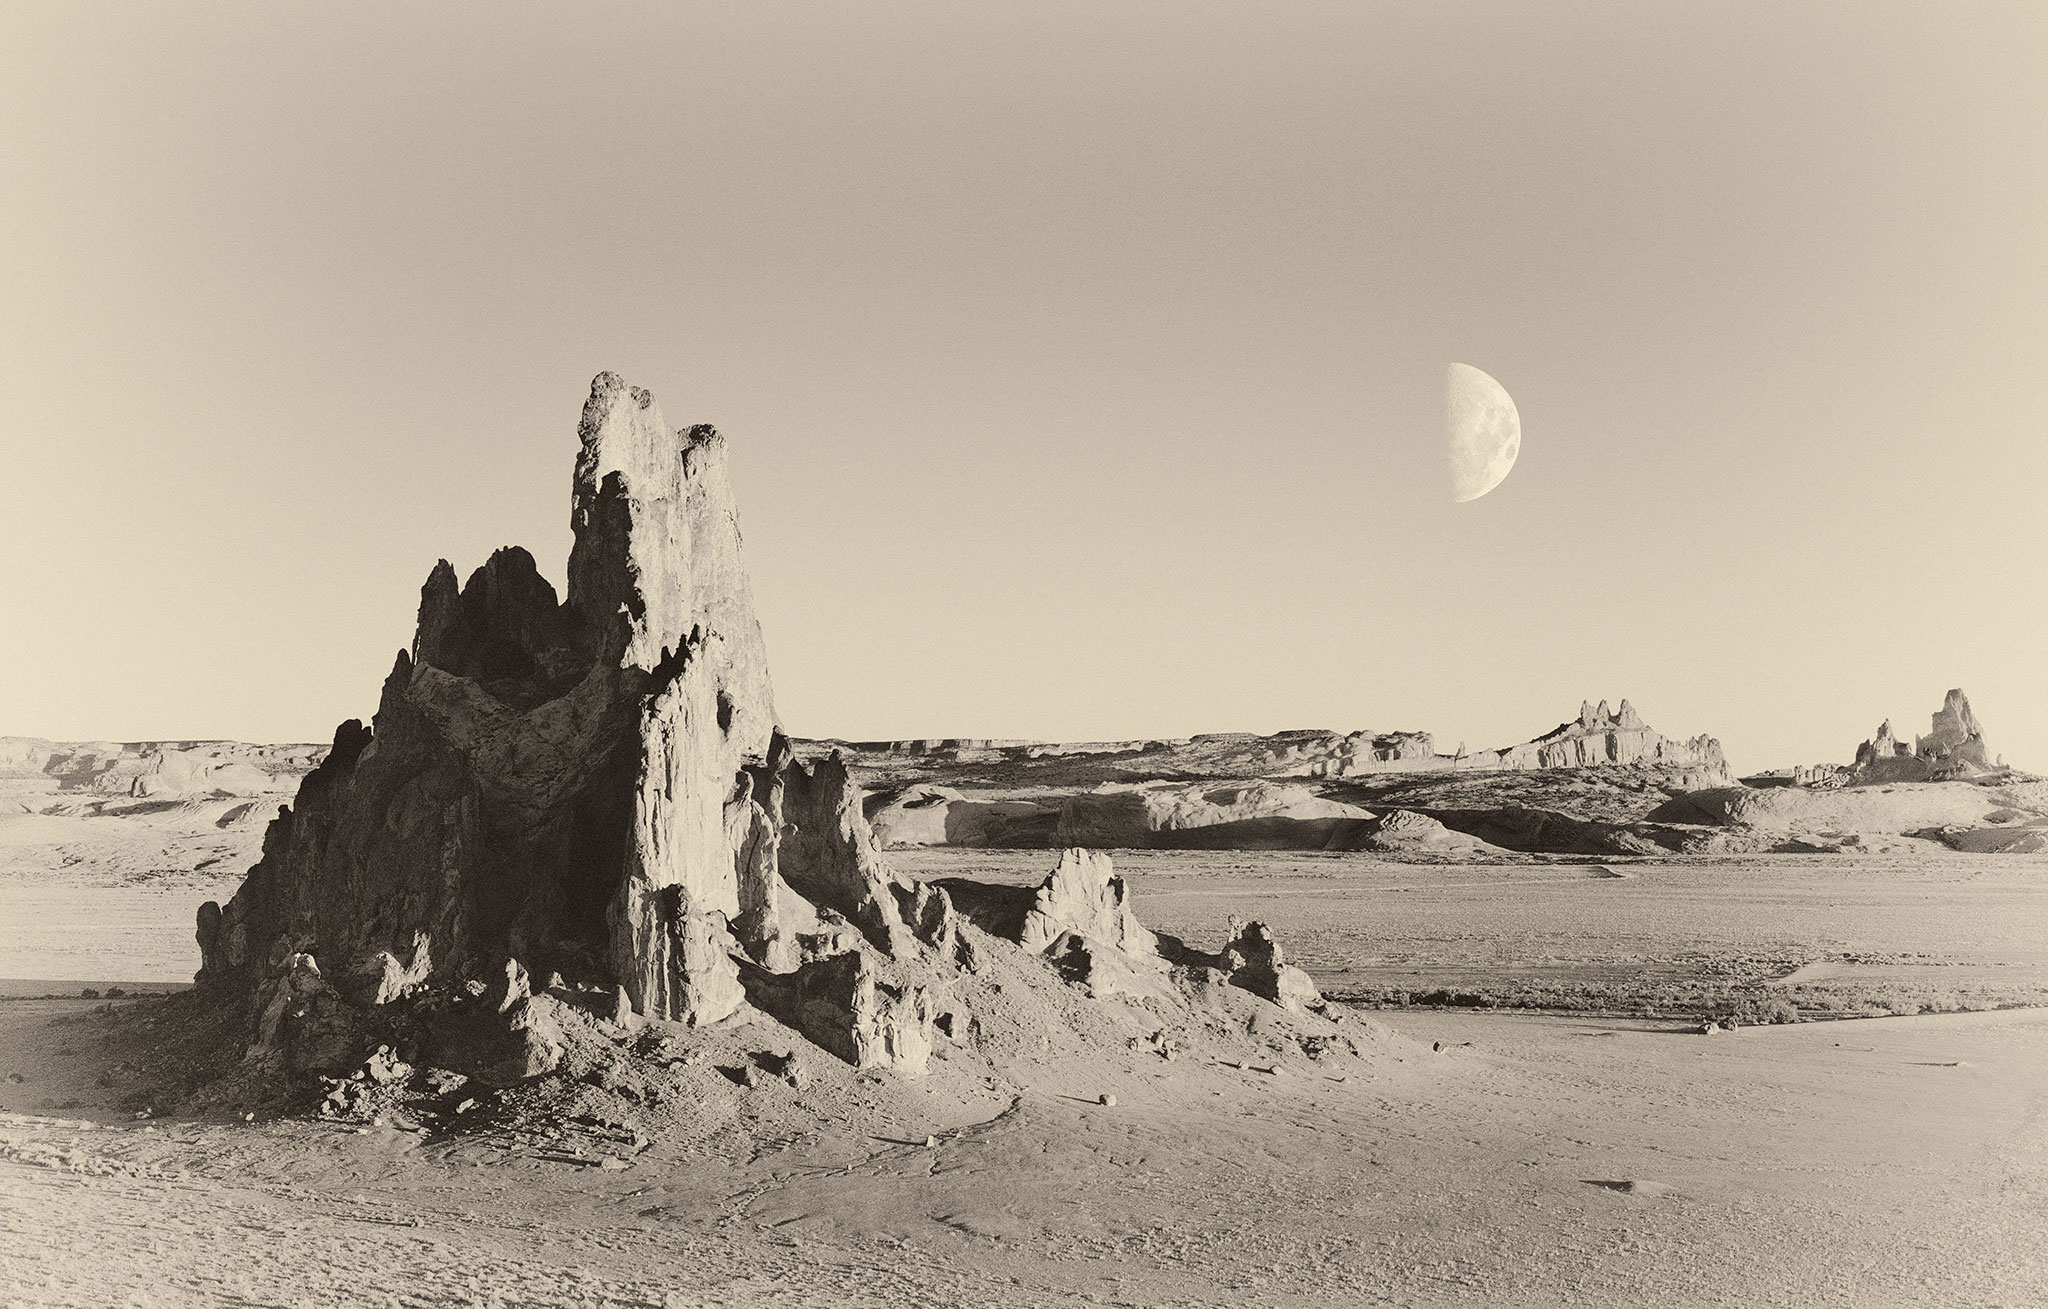 GW291_Utah_rock_formation_moon_retro2_2048_crp